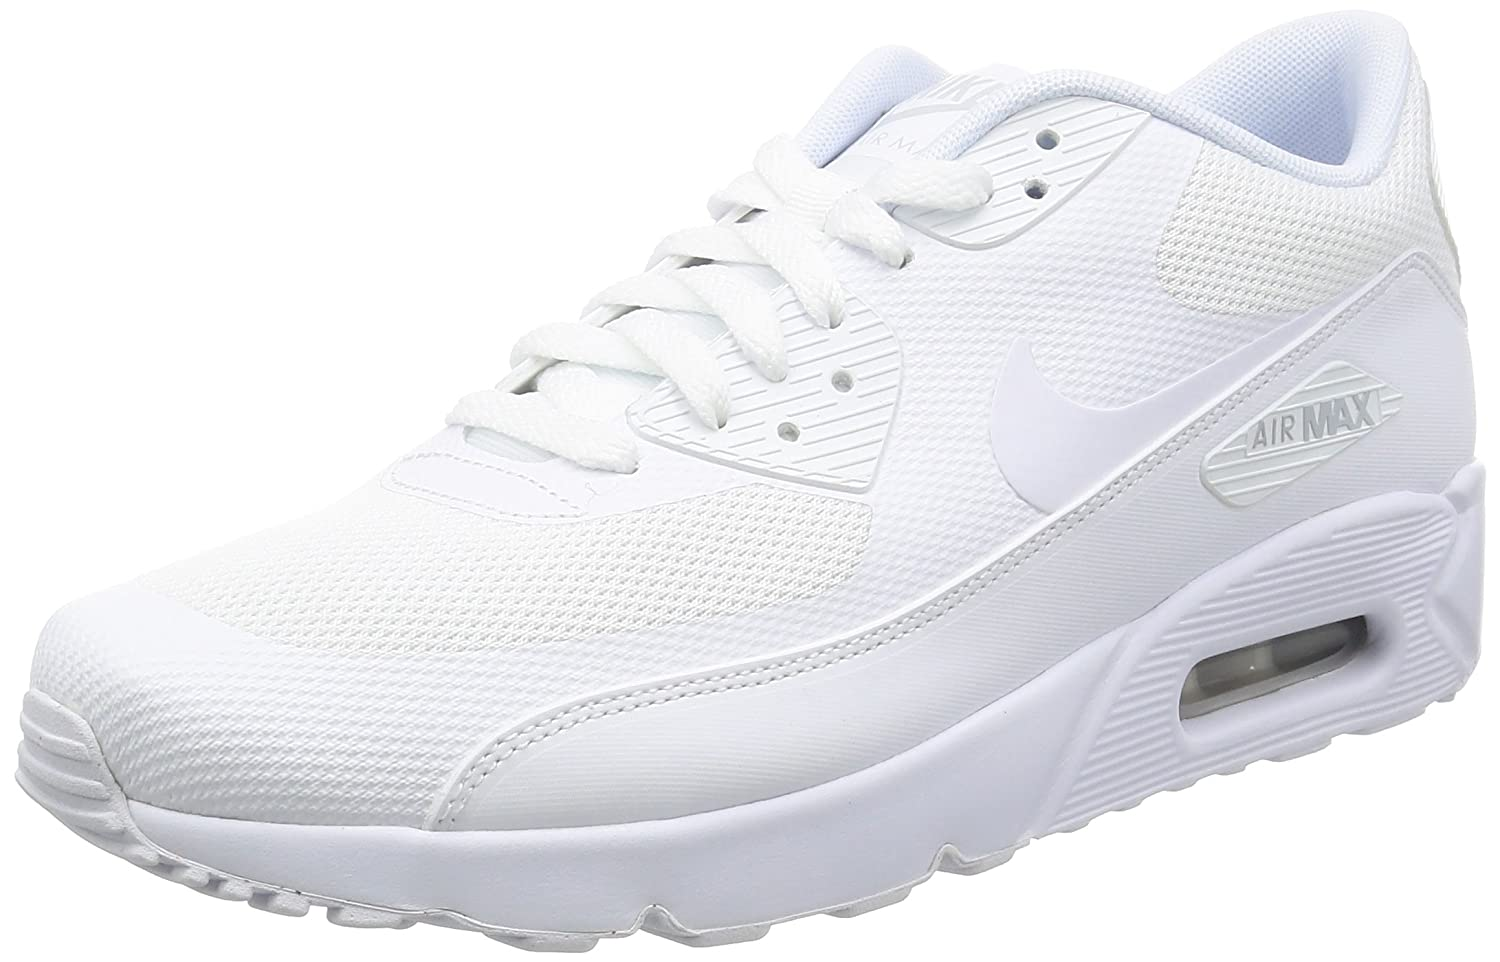 reputable site 5e51d 9a1c6 Amazon.com  NIKE Air Max 90 Ultra 2.0 Essential  Shoes